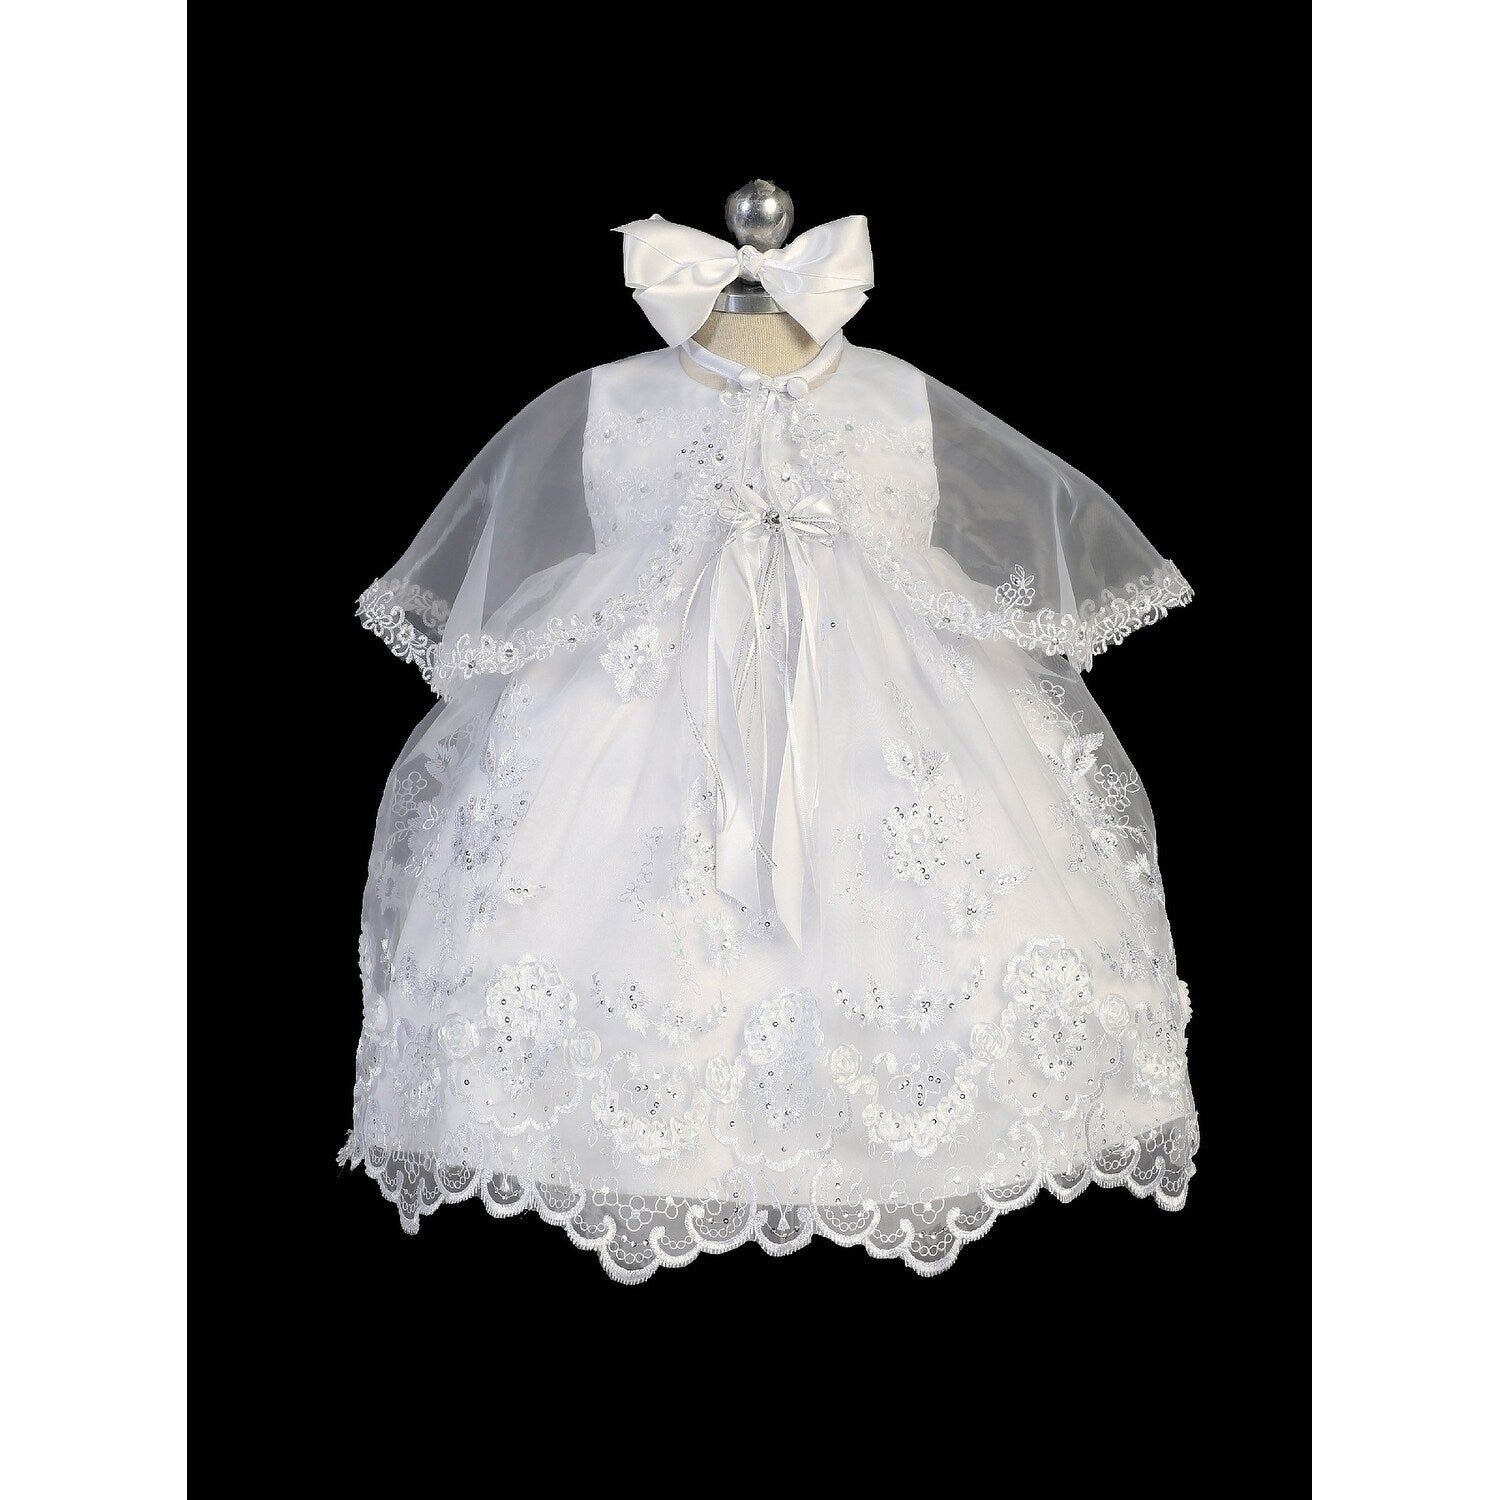 Sisi's Baptism Dress